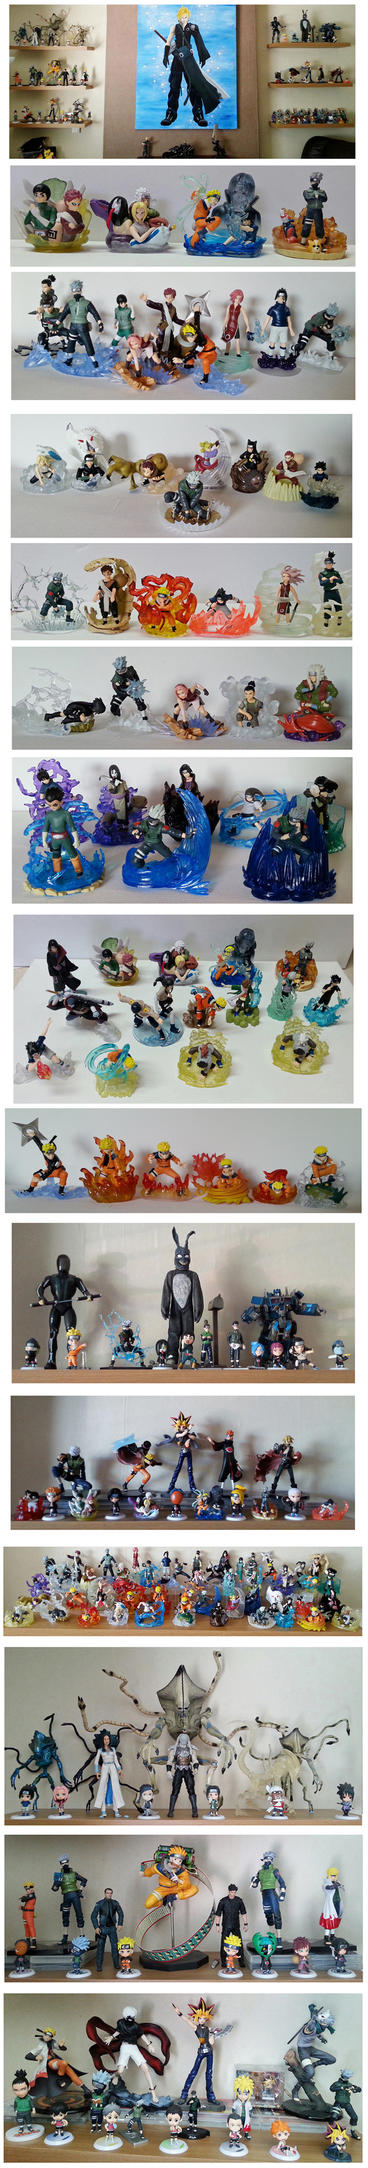 My Figure Collection. Or at least some of it... by The-Dreaming-Dragon